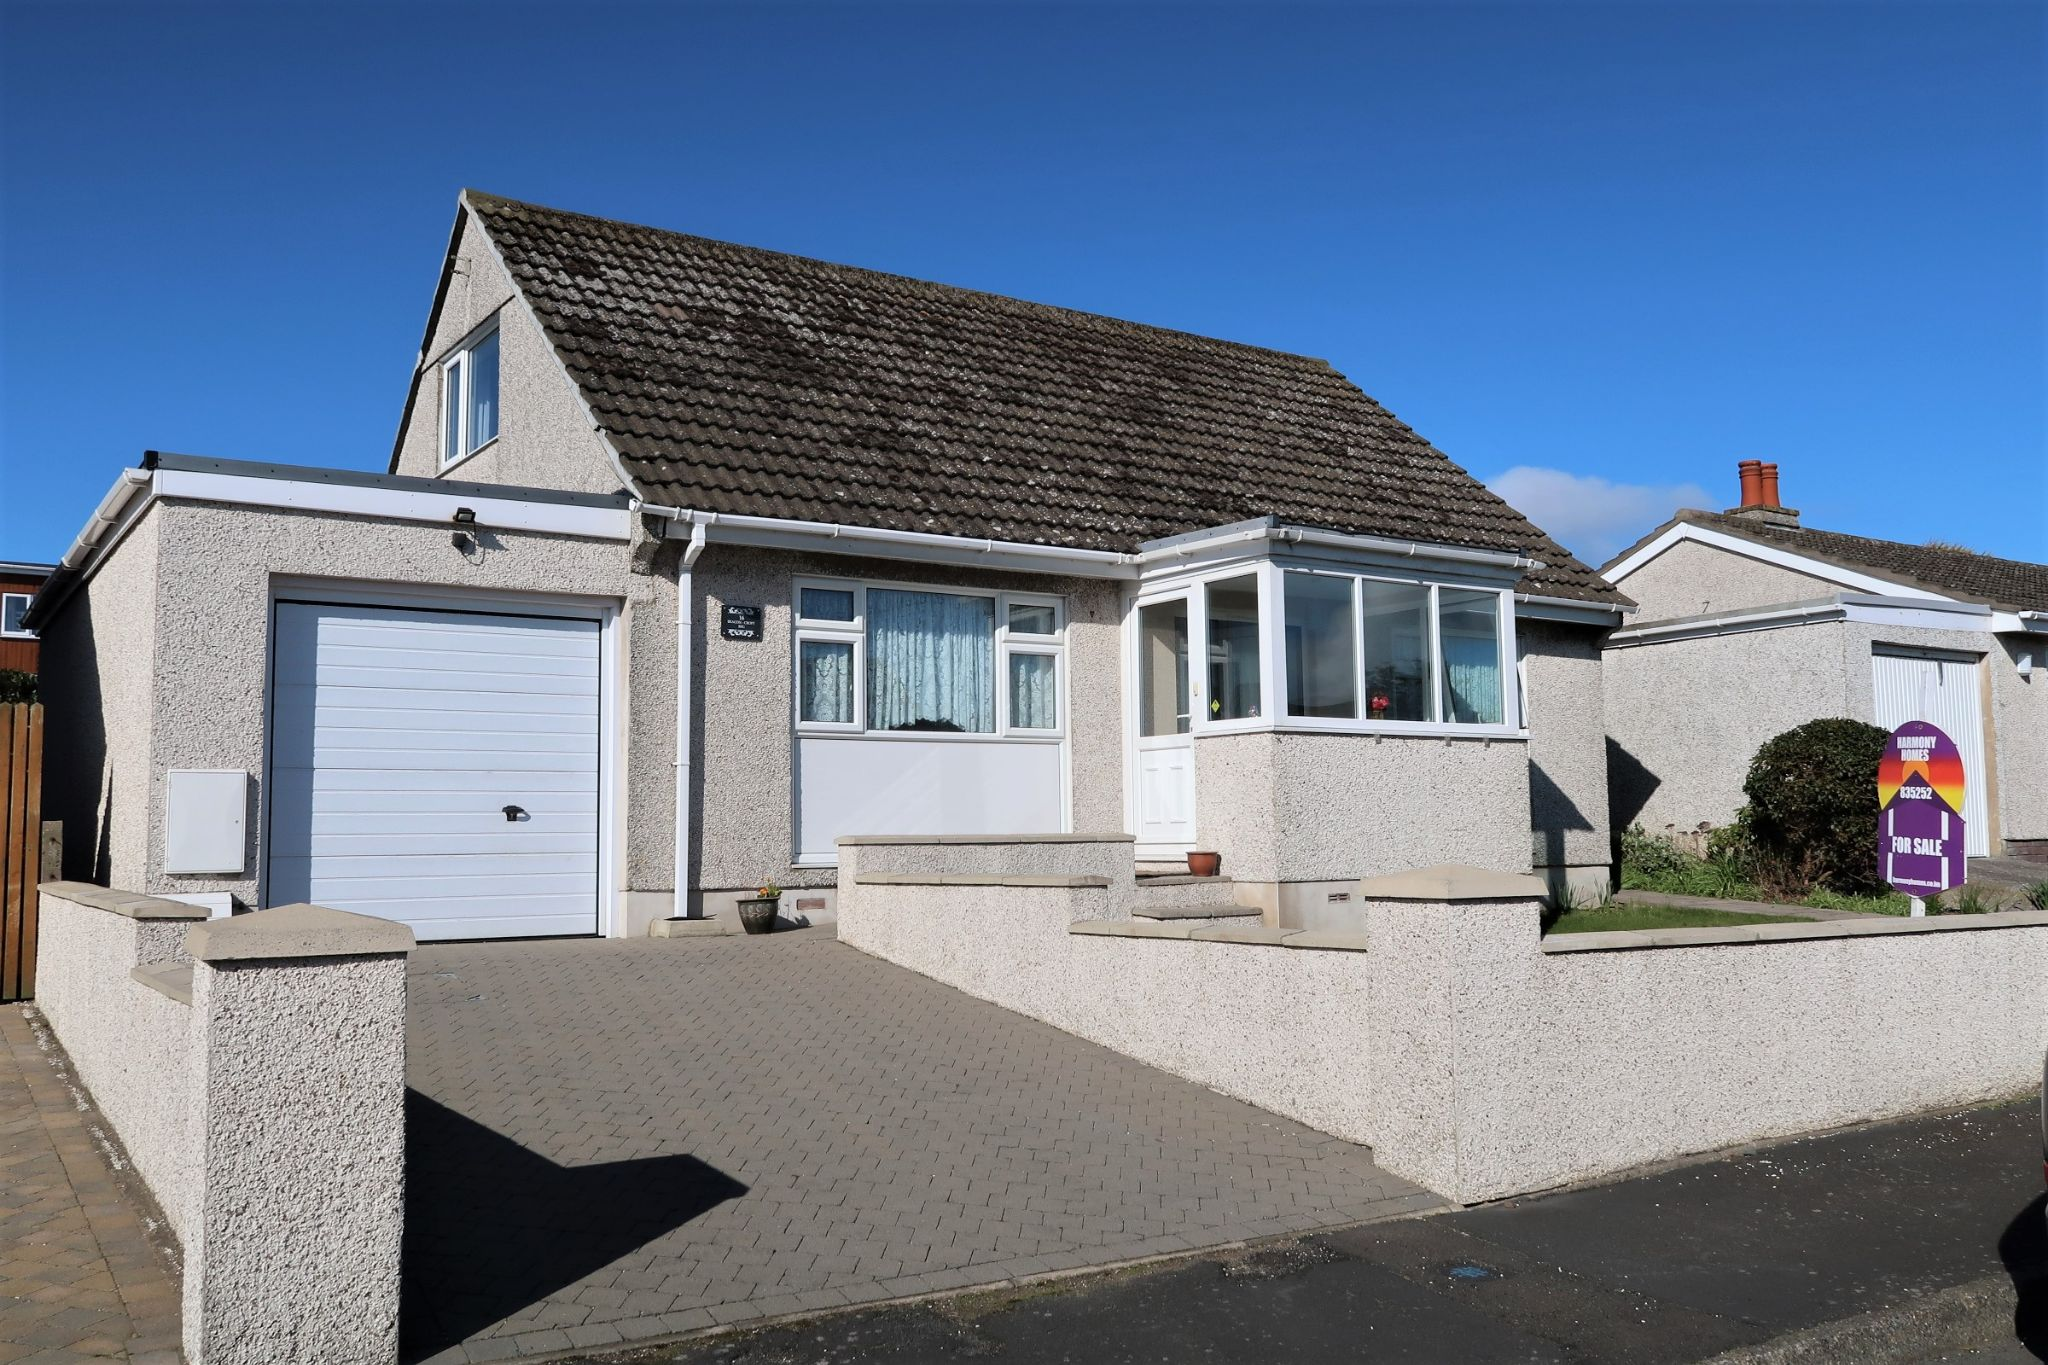 3 bedroom detached bungalow For Sale in Port Erin - Photograph 5